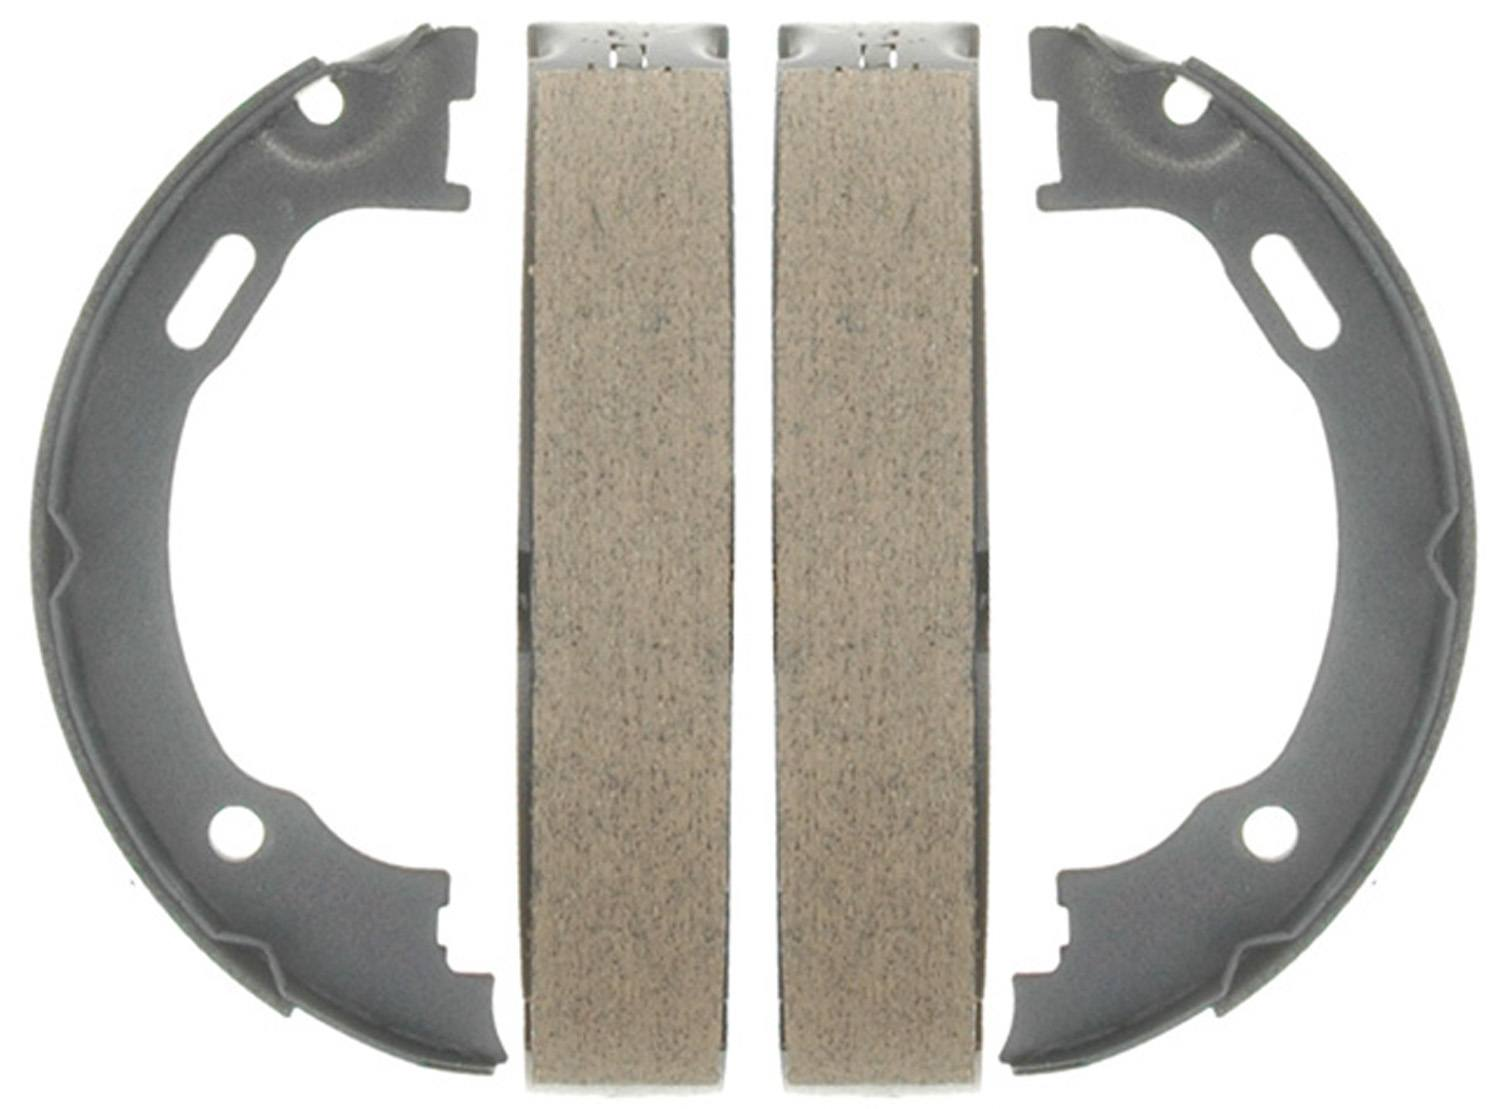 ACDELCO GOLD/PROFESSIONAL BRAKES - Bonded Parking Brake Shoe (Rear) - ADU 17777B